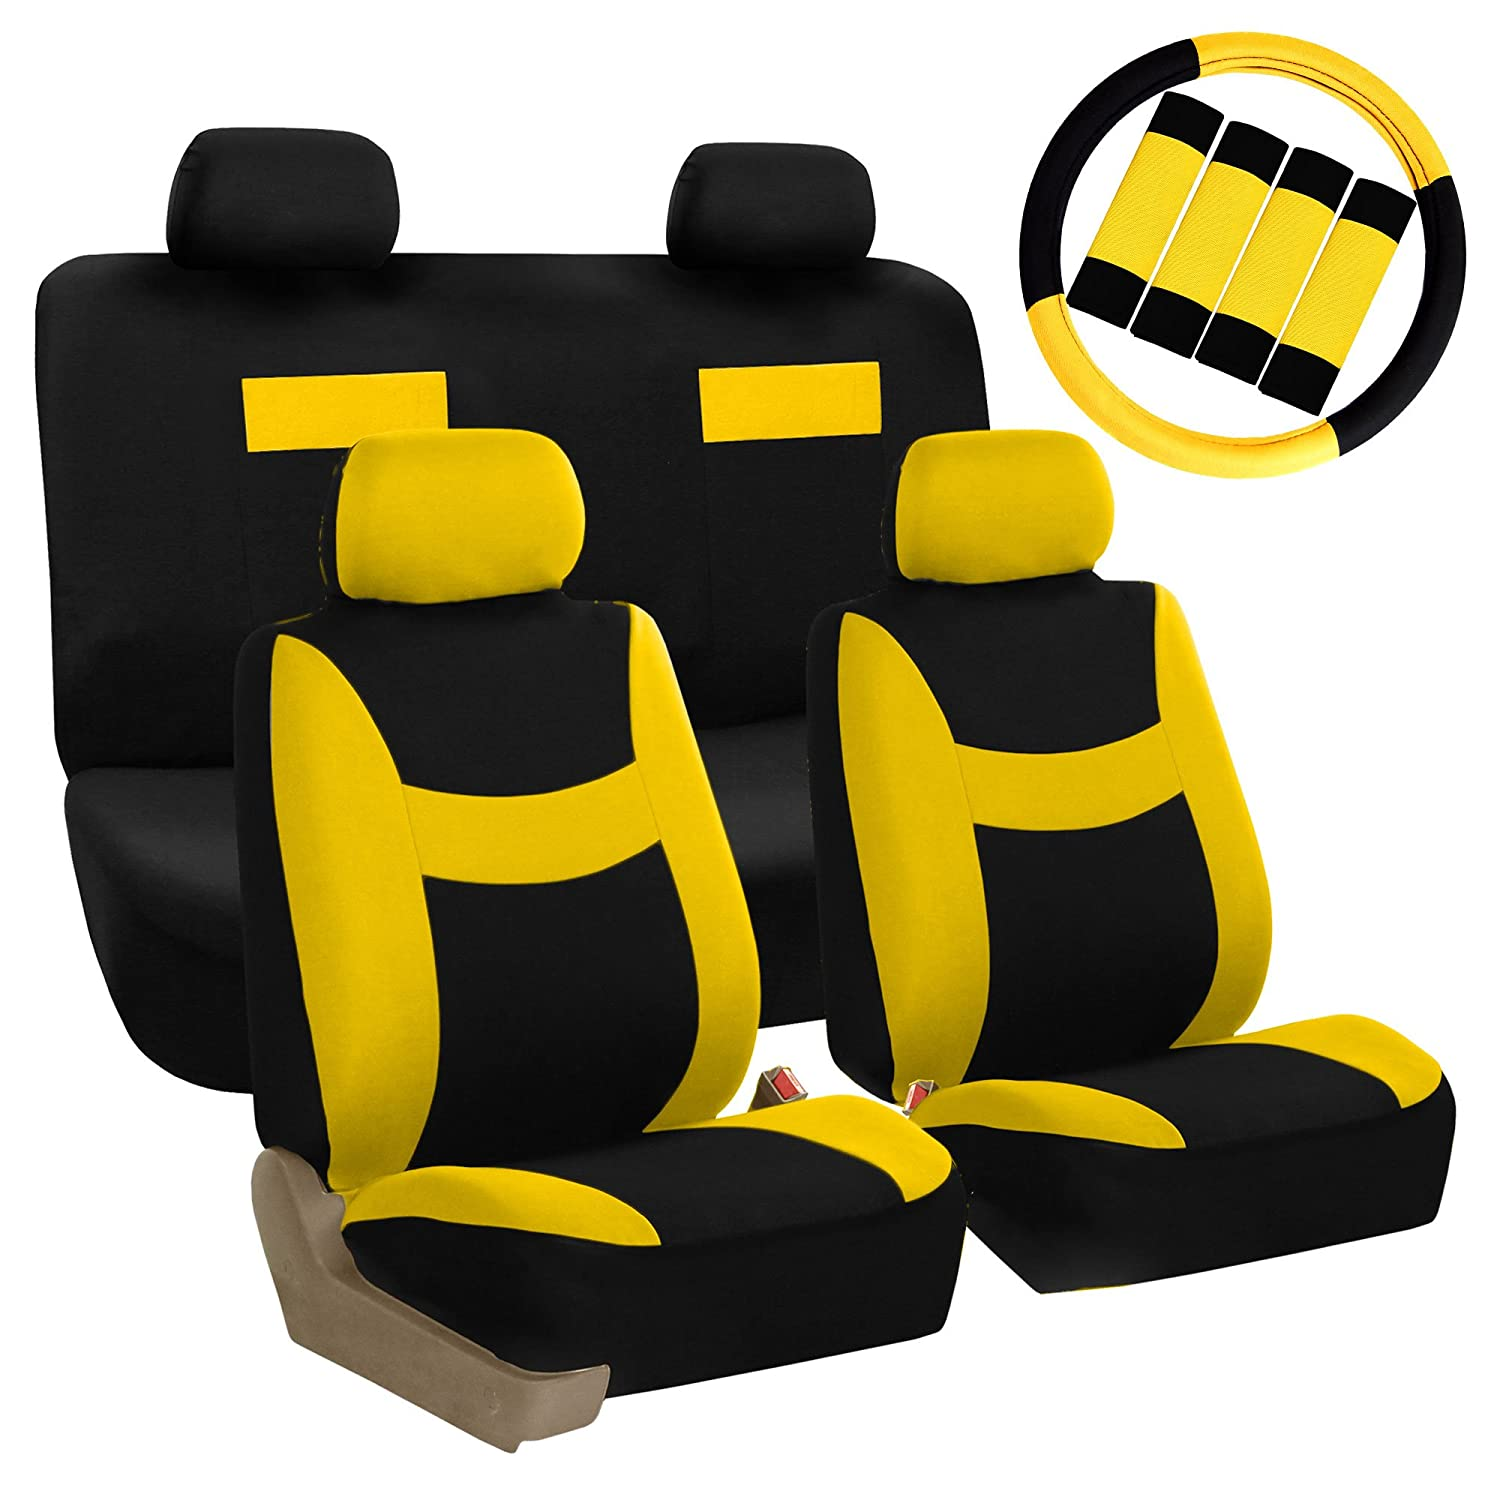 Amazon FH GROUP FB038114 Stylish Cloth Full Set Car Seat Covers Combo FH2033 Steering Wheel Belt Pads Yellow Black Fit Most Truck